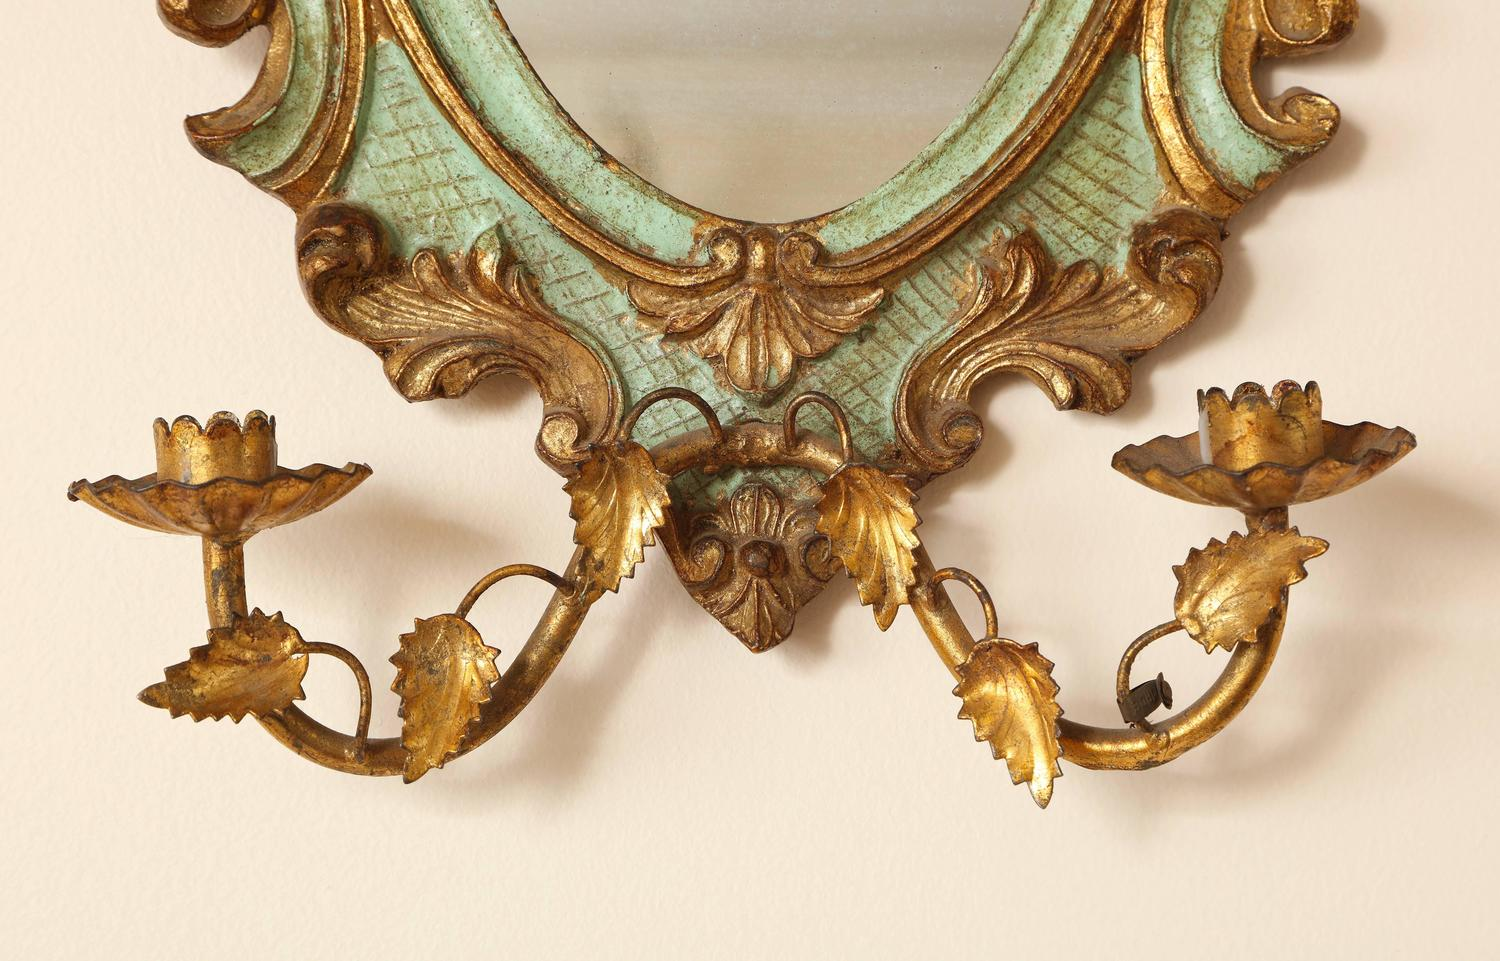 Venetian Wall Sconces : Pair of Venetian Painted and Gilded Girandoles or Wall Sconces, Two Candlearms For Sale at 1stdibs